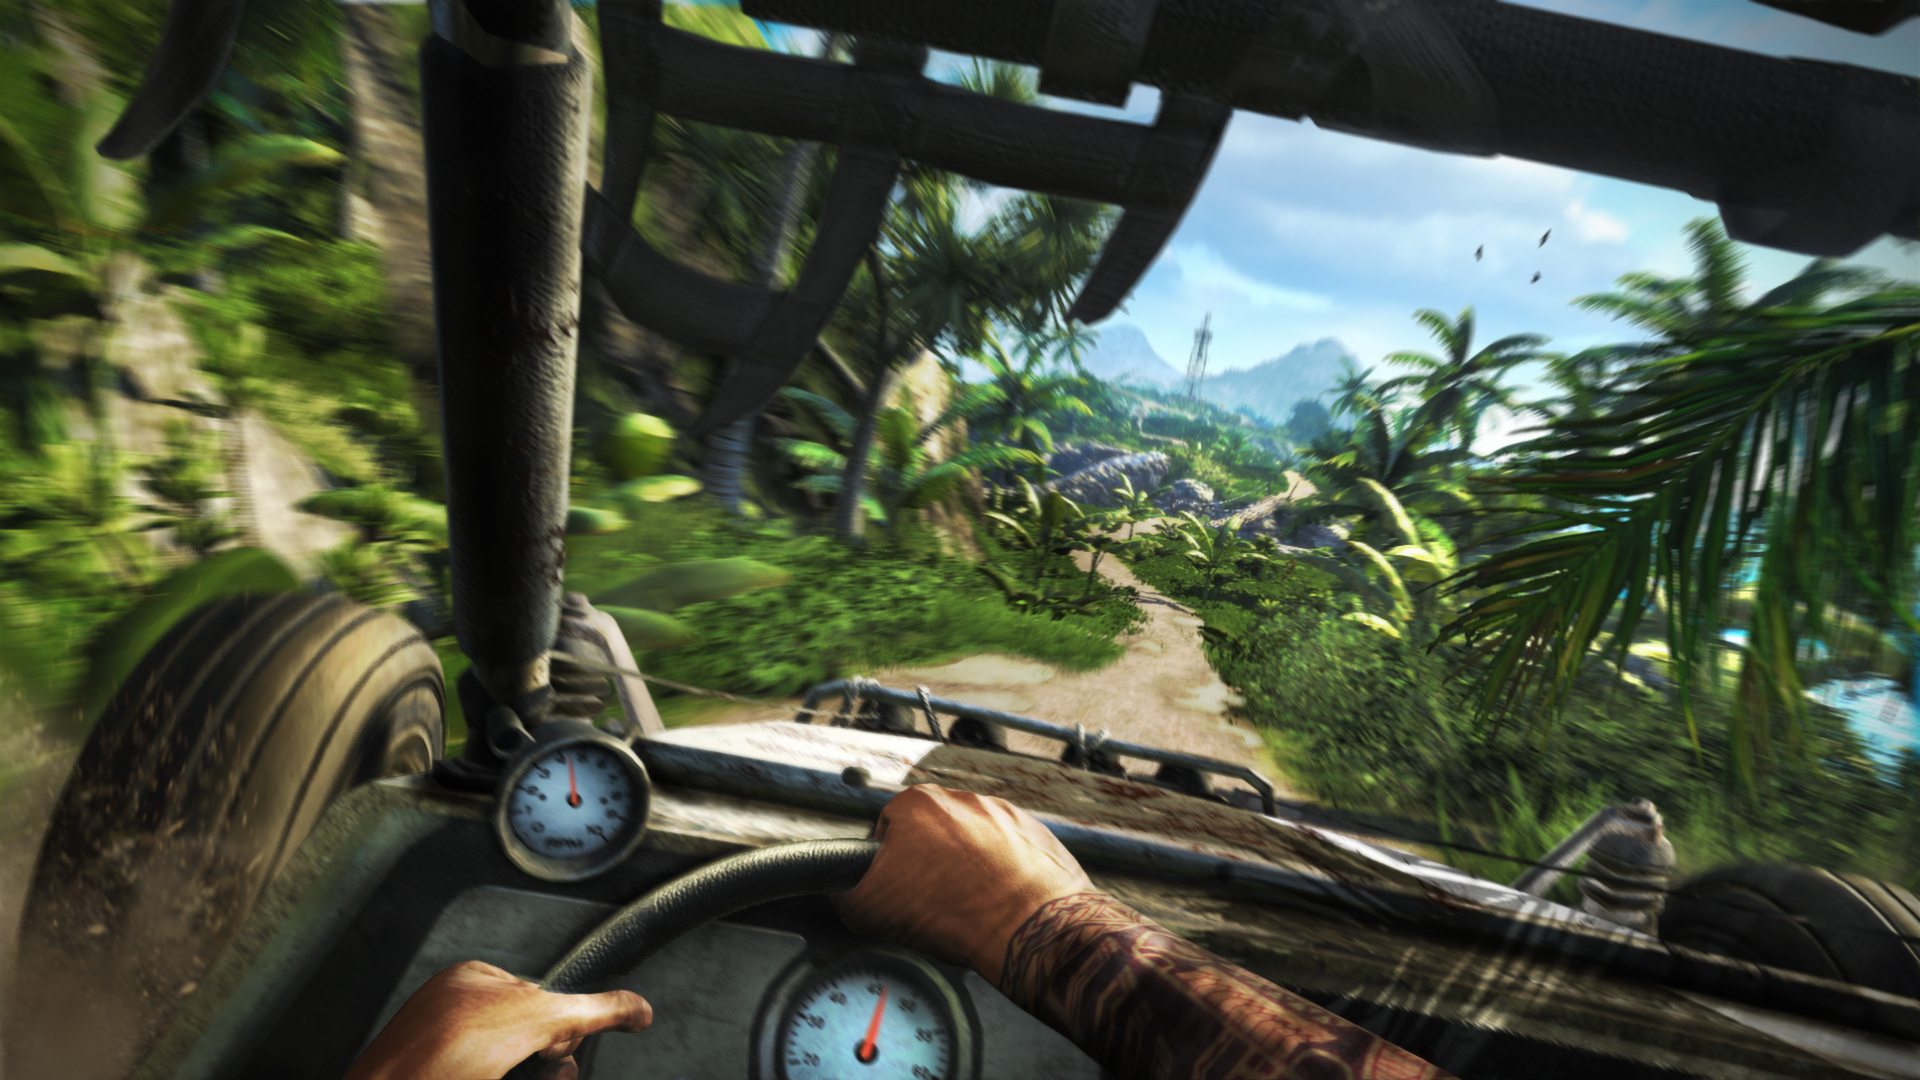 Far Cry 3 System Requirements Can I Run It Pcgamebenchmark